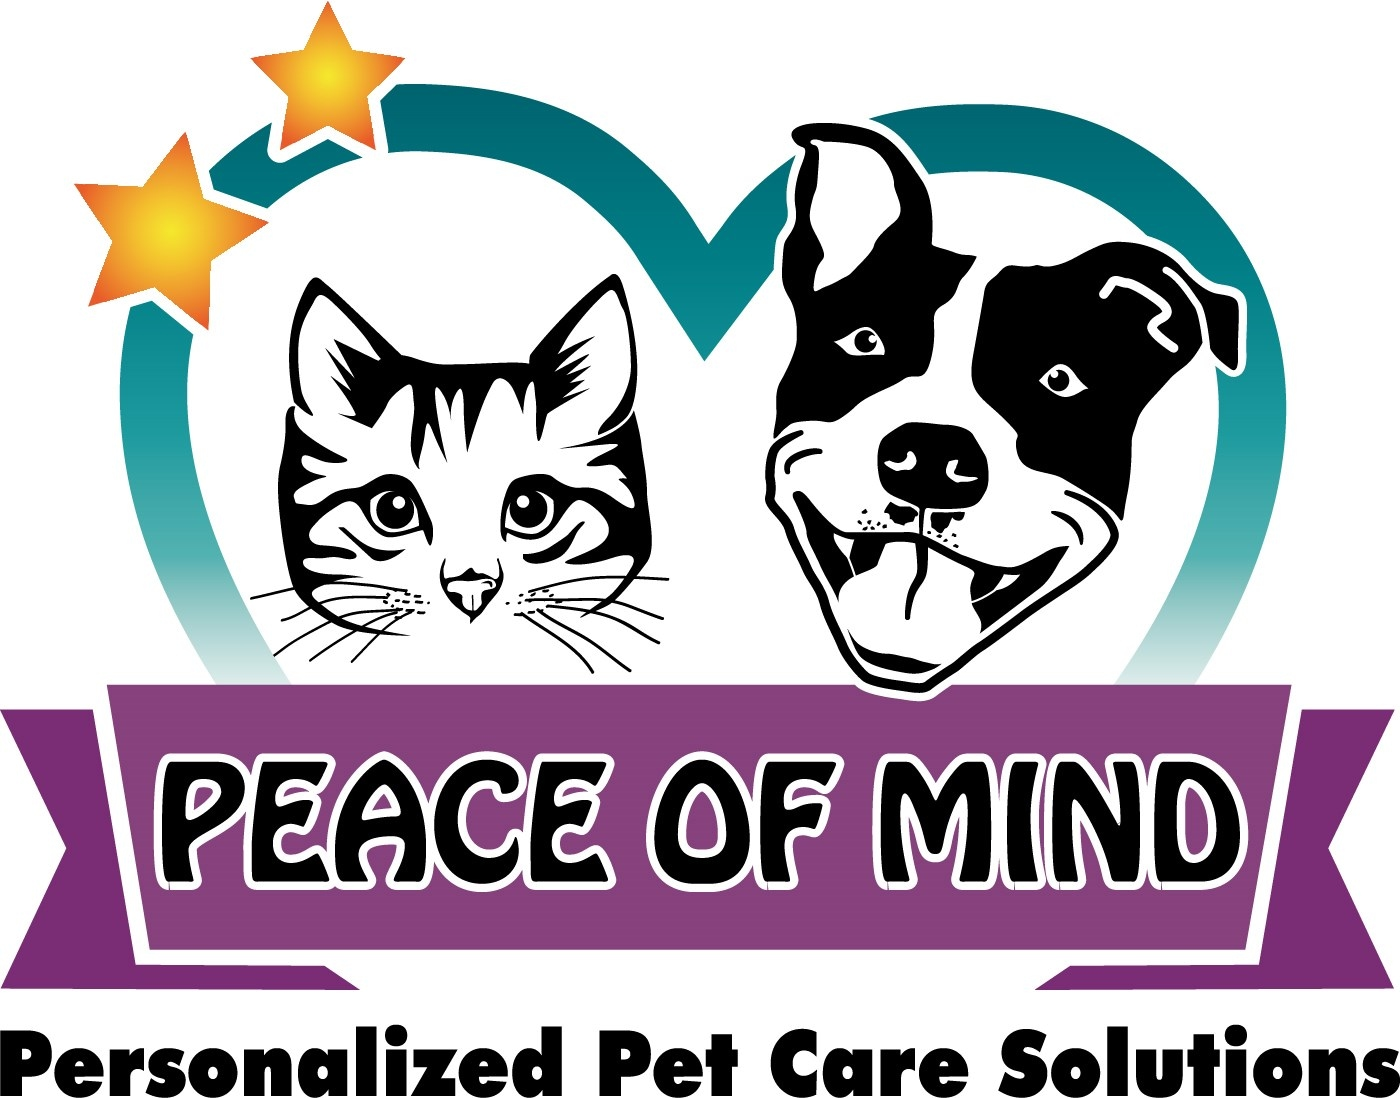 Peace Of Mind Personalized Pet Care Solutions